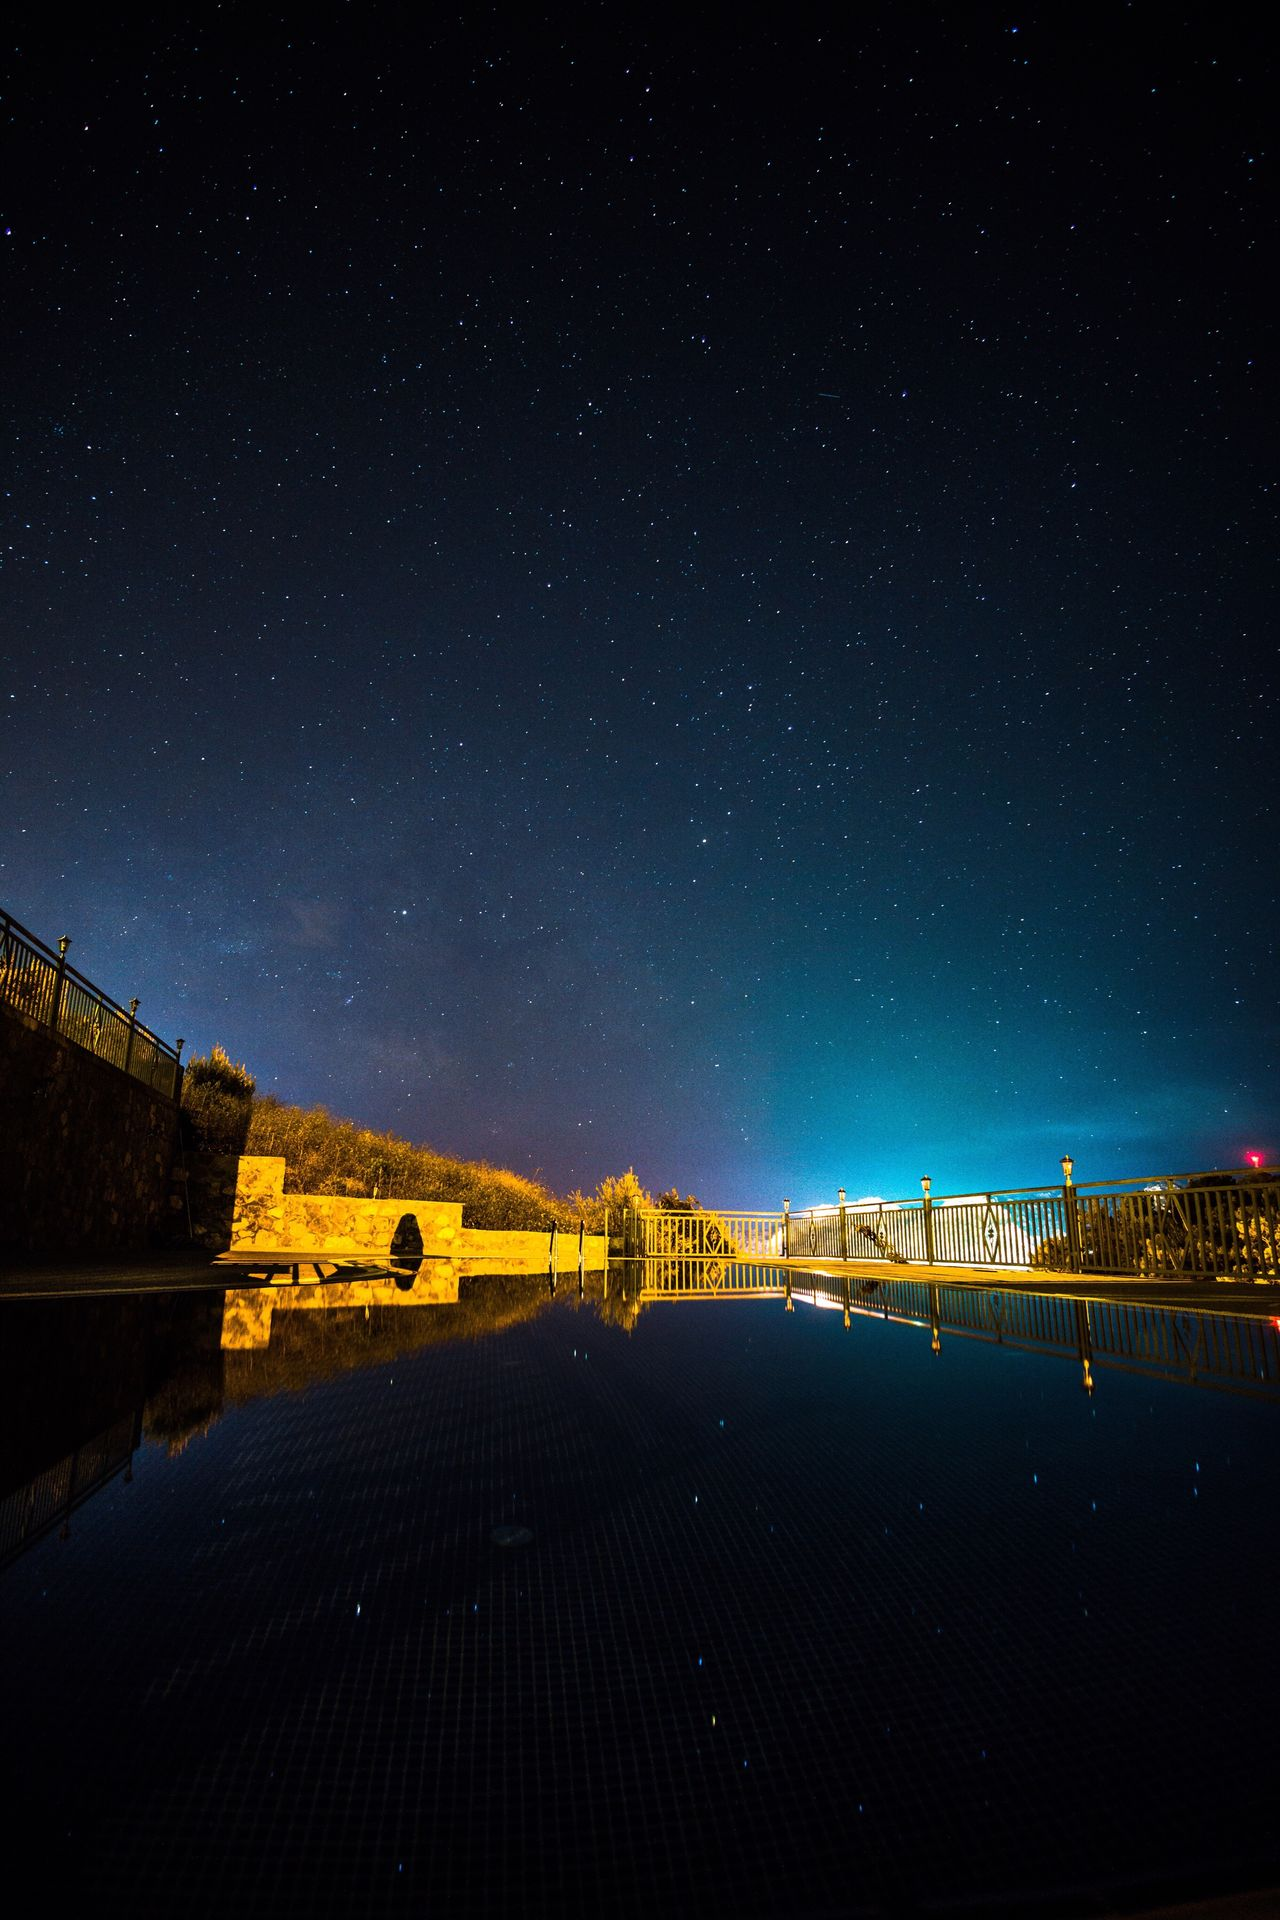 Star - Space Night Bridge - Man Made Structure Sky Scenics Beauty In Nature Nature Water Astronomy Outdoors Architecture Tranquility No People Built Structure Star Field Galaxy Mountain Illuminated Starry Constellation